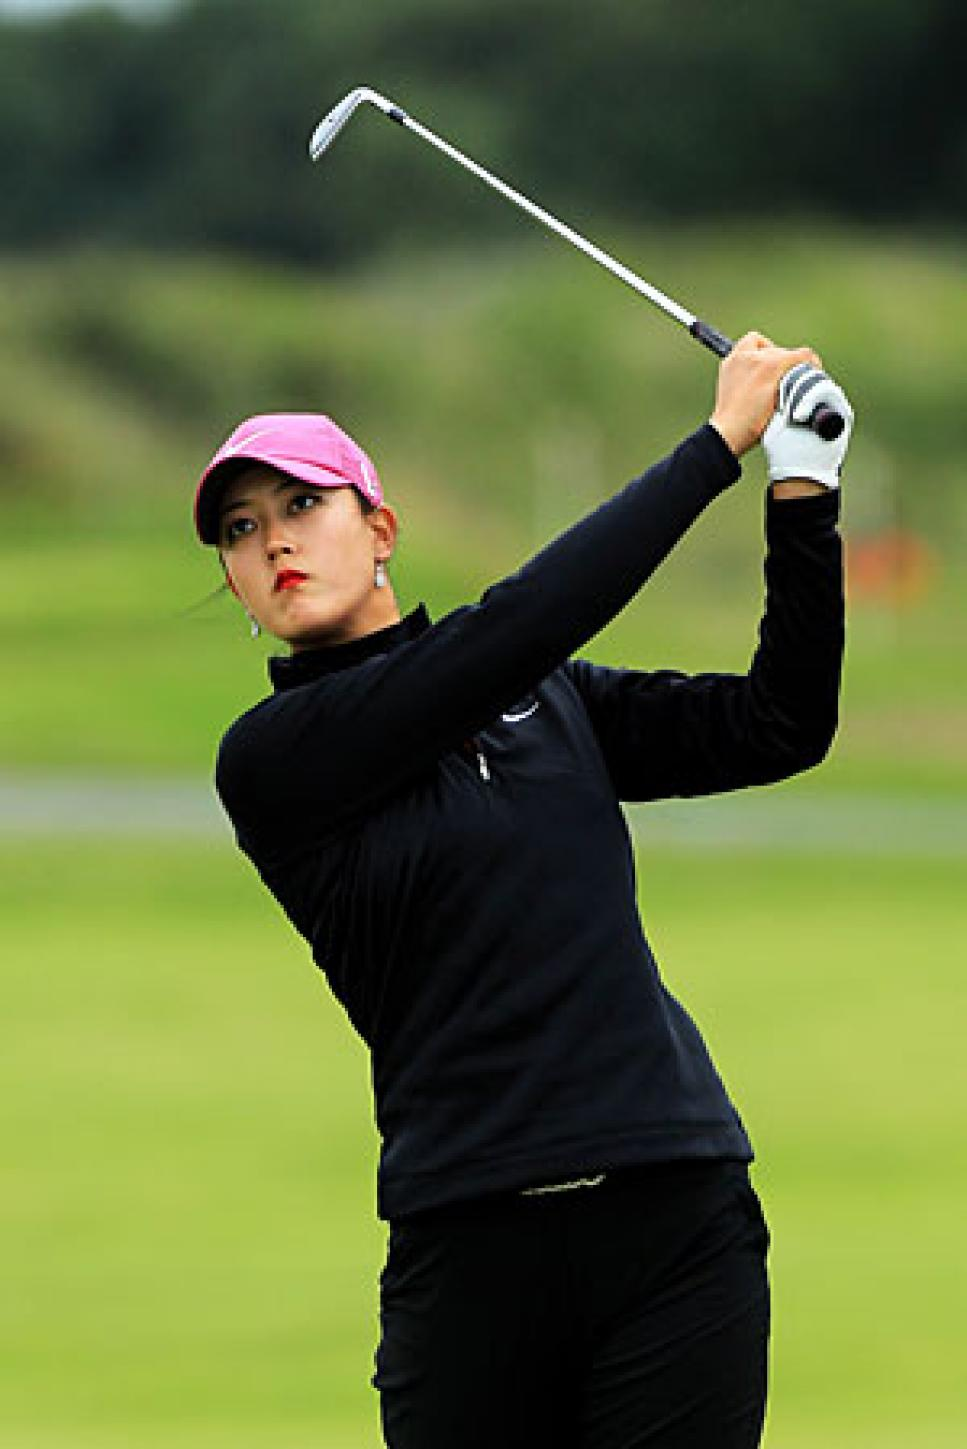 golf-digest-woman-blogs-golf-digest-woman-assets_c-2010-07-gwar01_wie_blog_0729-thumb-300x450-19121.jpg